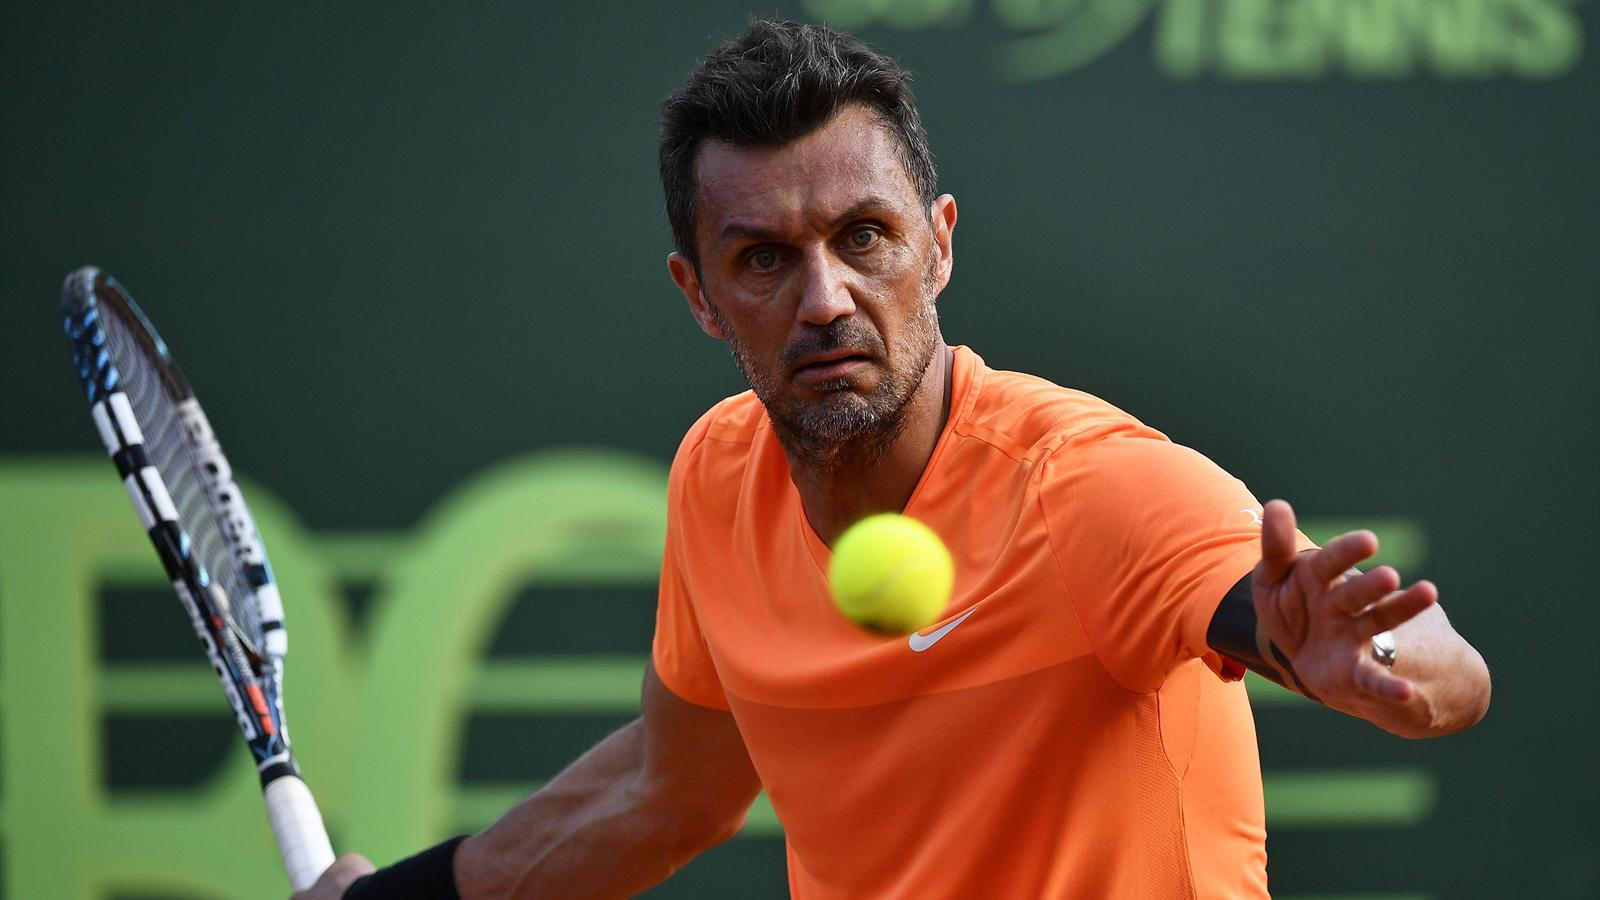 Former Italy defender Paolo Maldini suffers defeat in professional tennis debut - Football ...